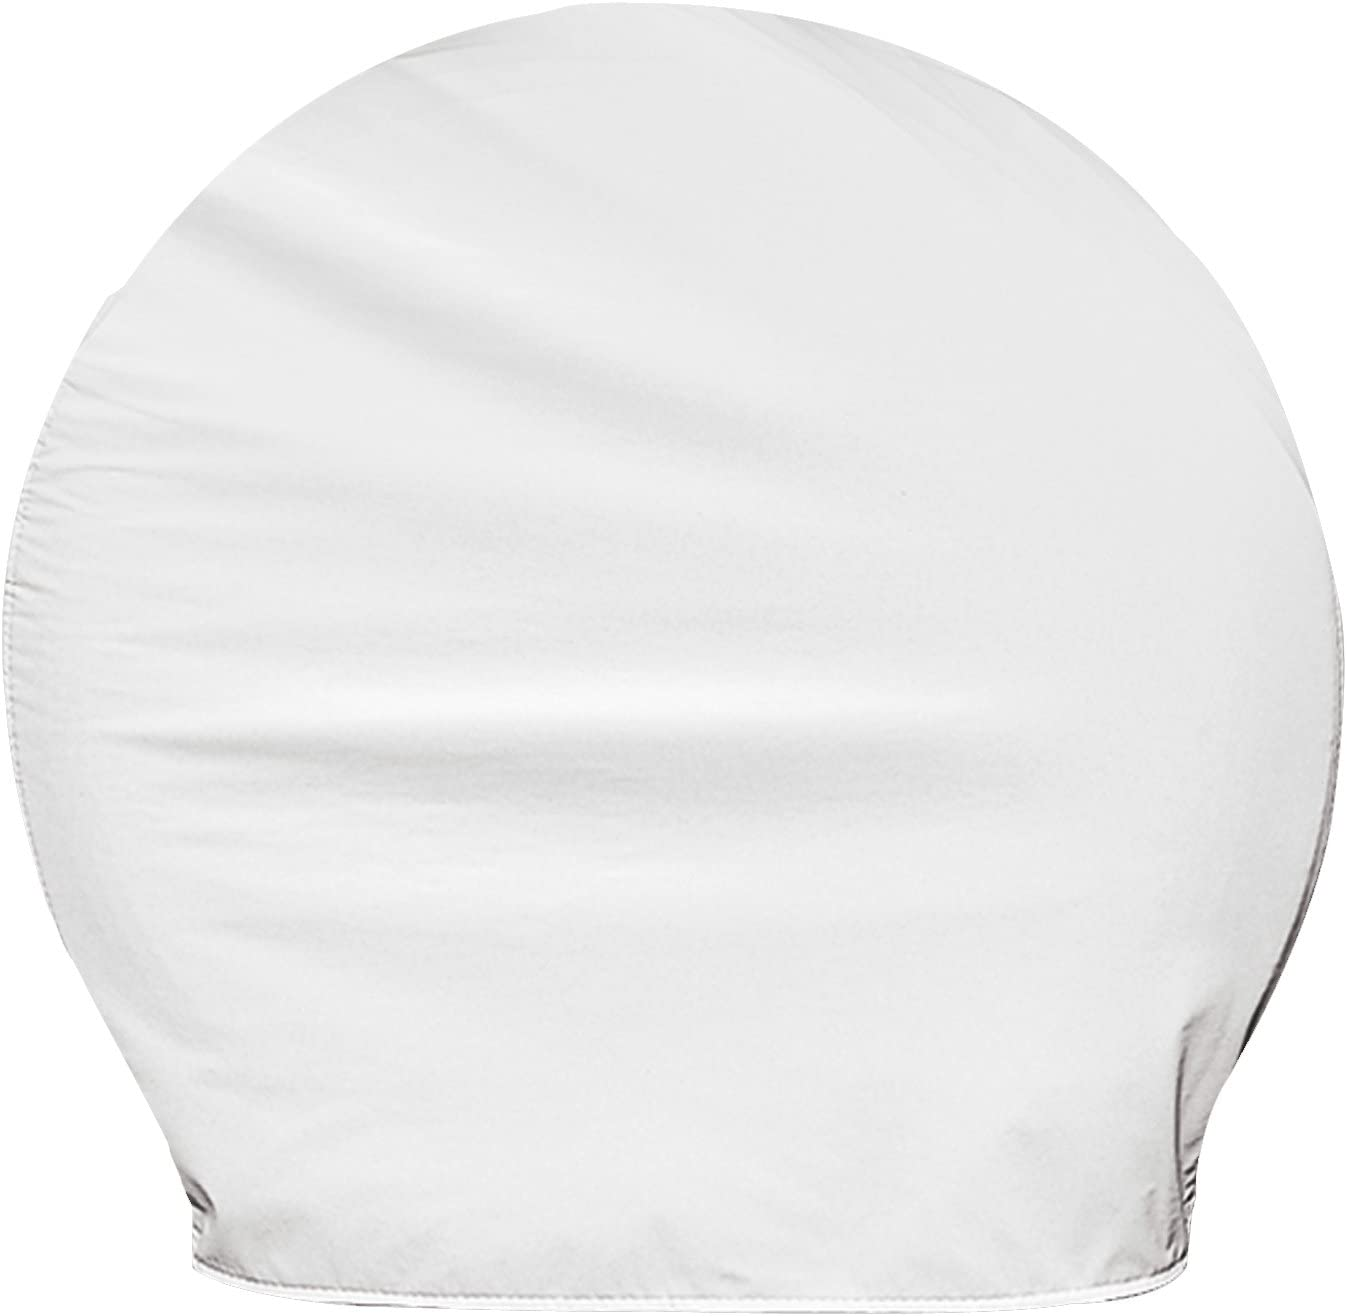 ADCO Weekly update New product! New type 3952 White Ultra Tyre Wheel Gard Cover